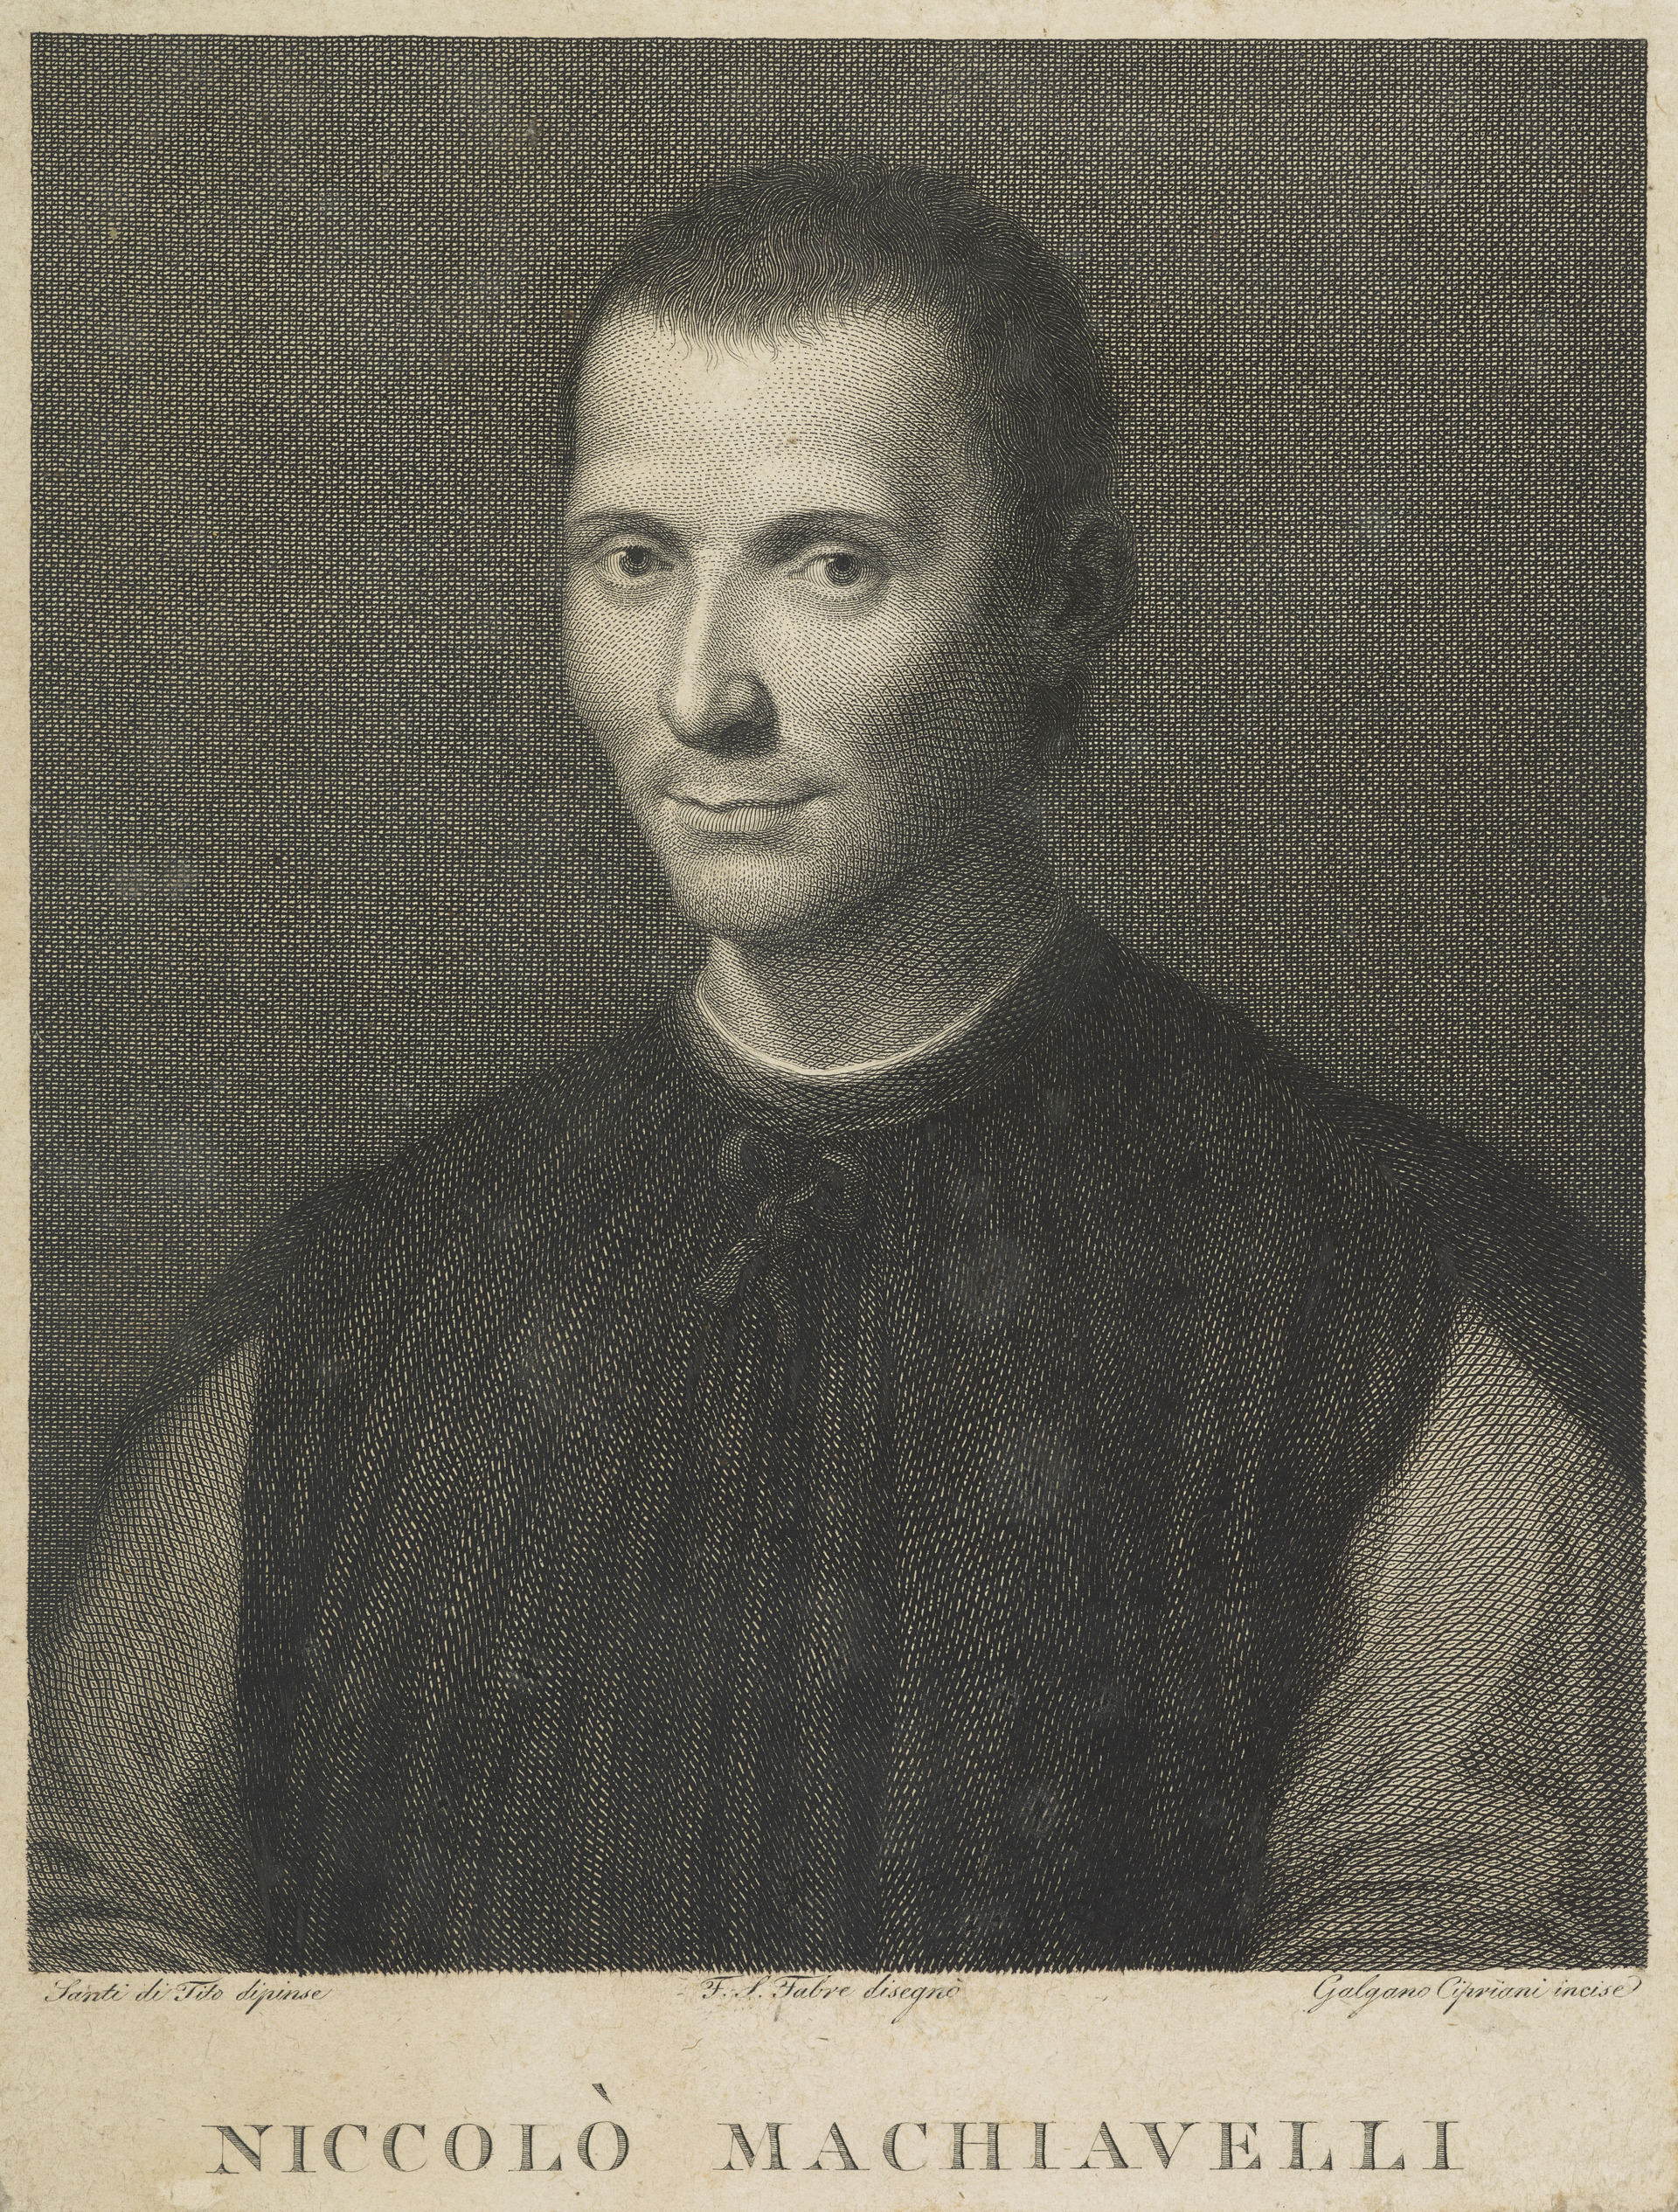 Galgano Cipriani, Niccolo Machiavelli, 1469-1527 Statesman and historiographer, National Galleries Scotland, Accession Number FP I 81.1  https://www.nationalgalleries.org/art-and-artists/34757/niccolo-machiavelli-1469-1527-statesman-and-historiographer